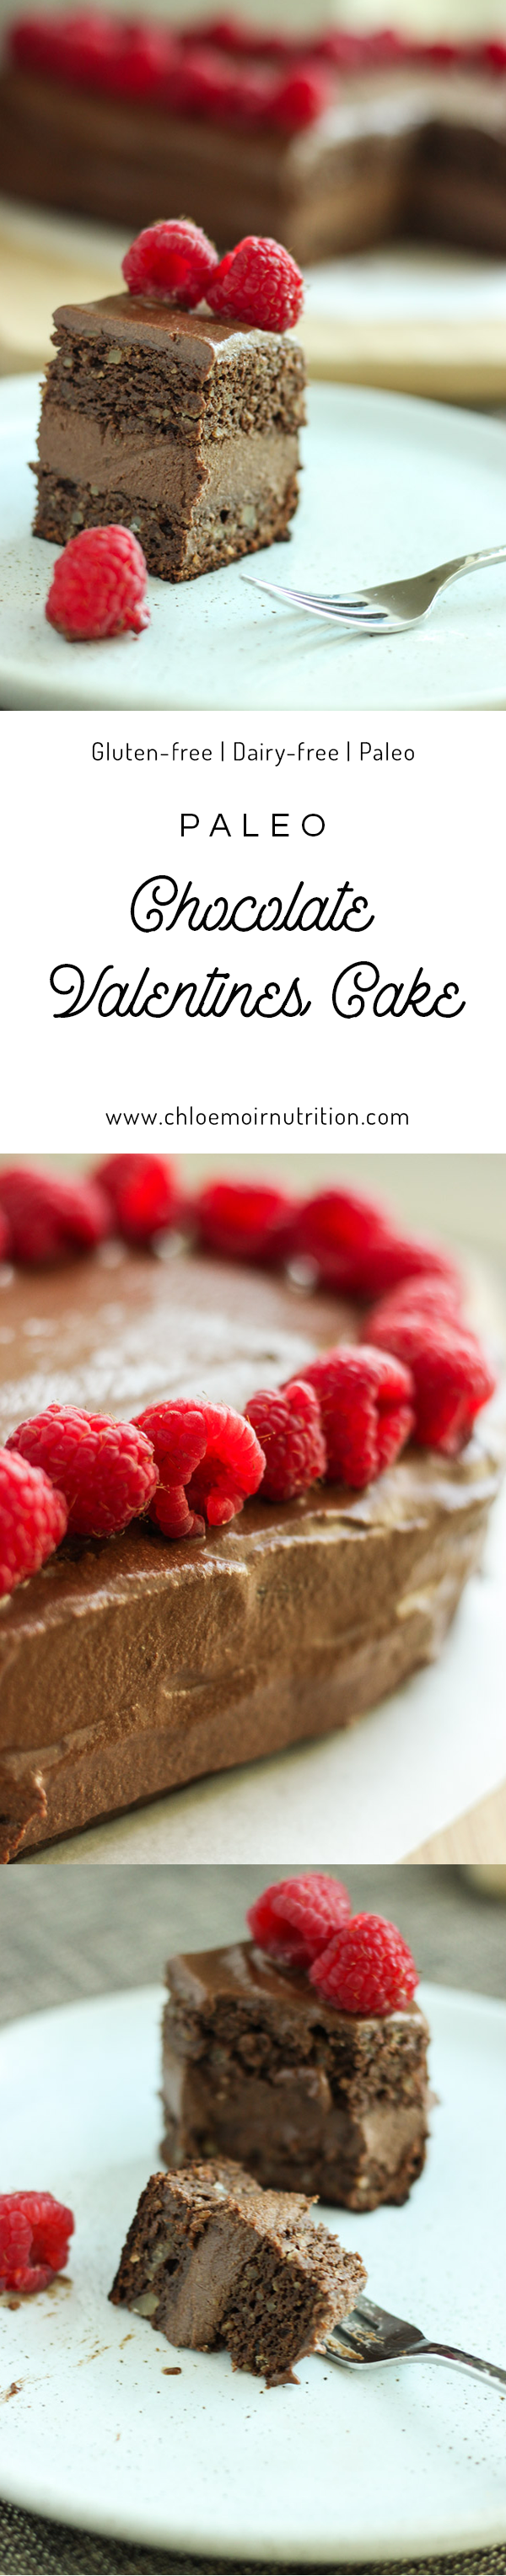 Chocolate valentines cake that is easy and delicious. Vegetarian | Gluten Free | Dairy-free | Paleo | Recipe | Breakfast | Healthy | Love